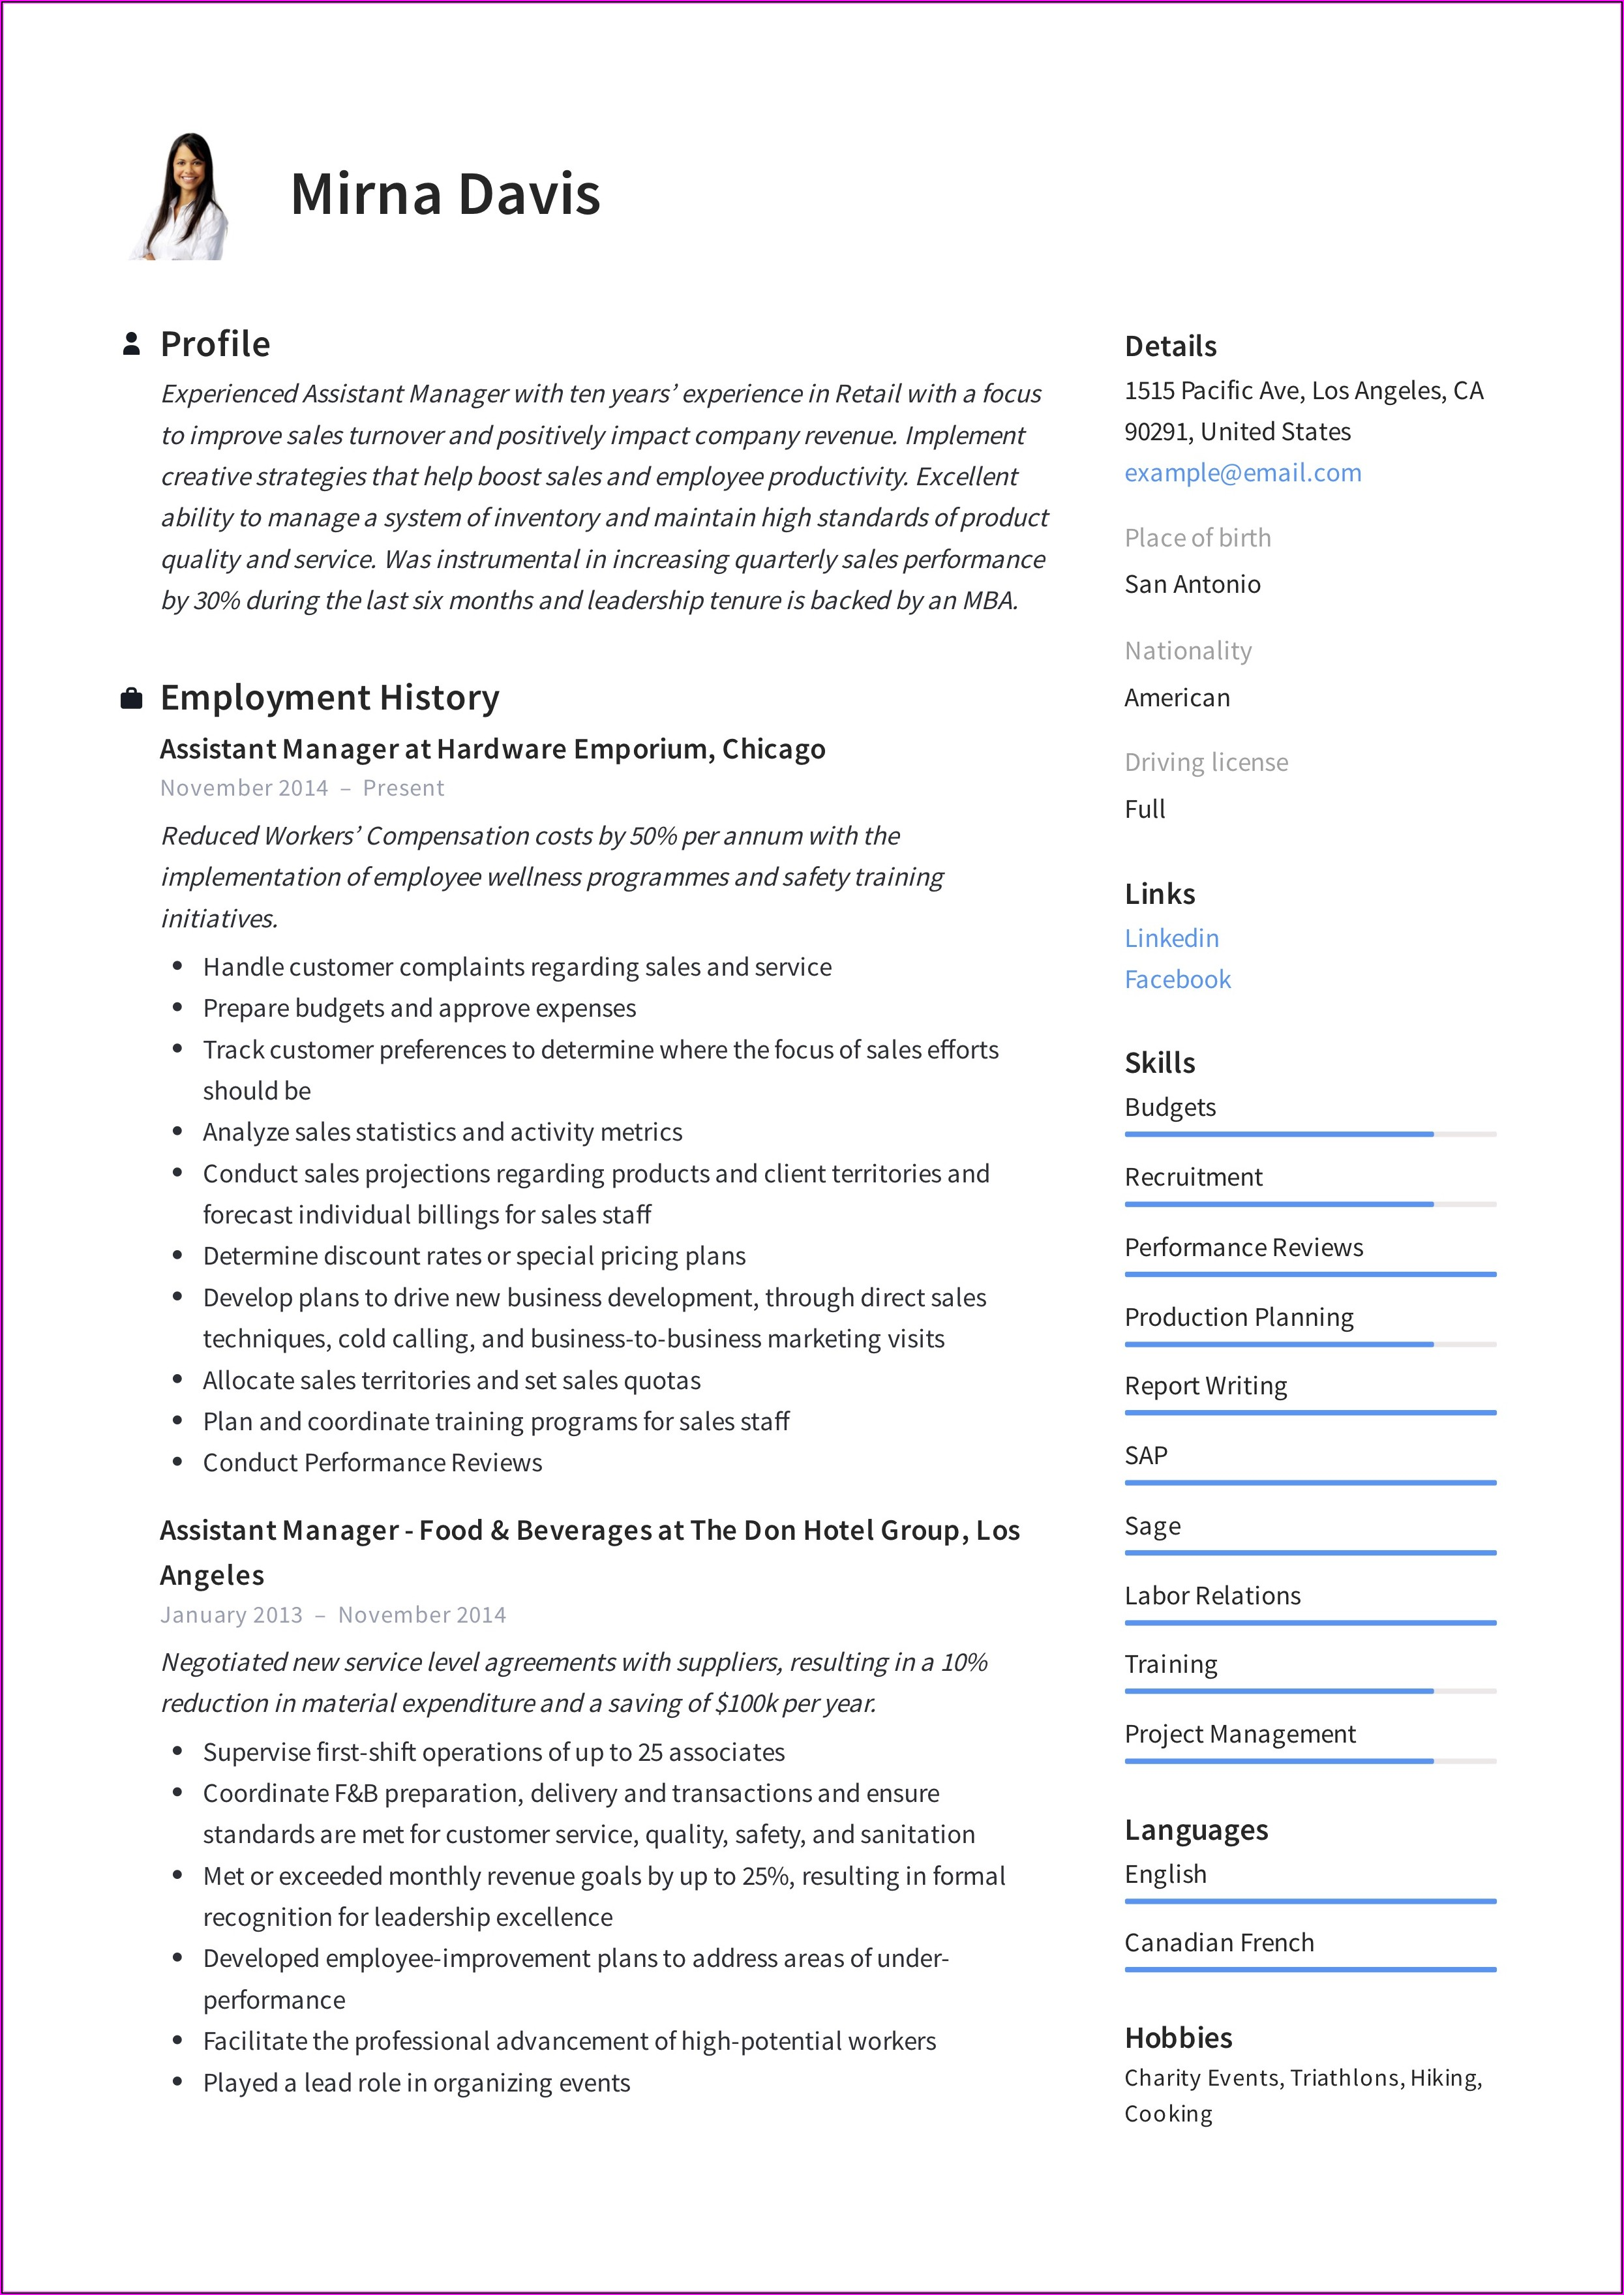 Resume Format For Assistant Manager Quality